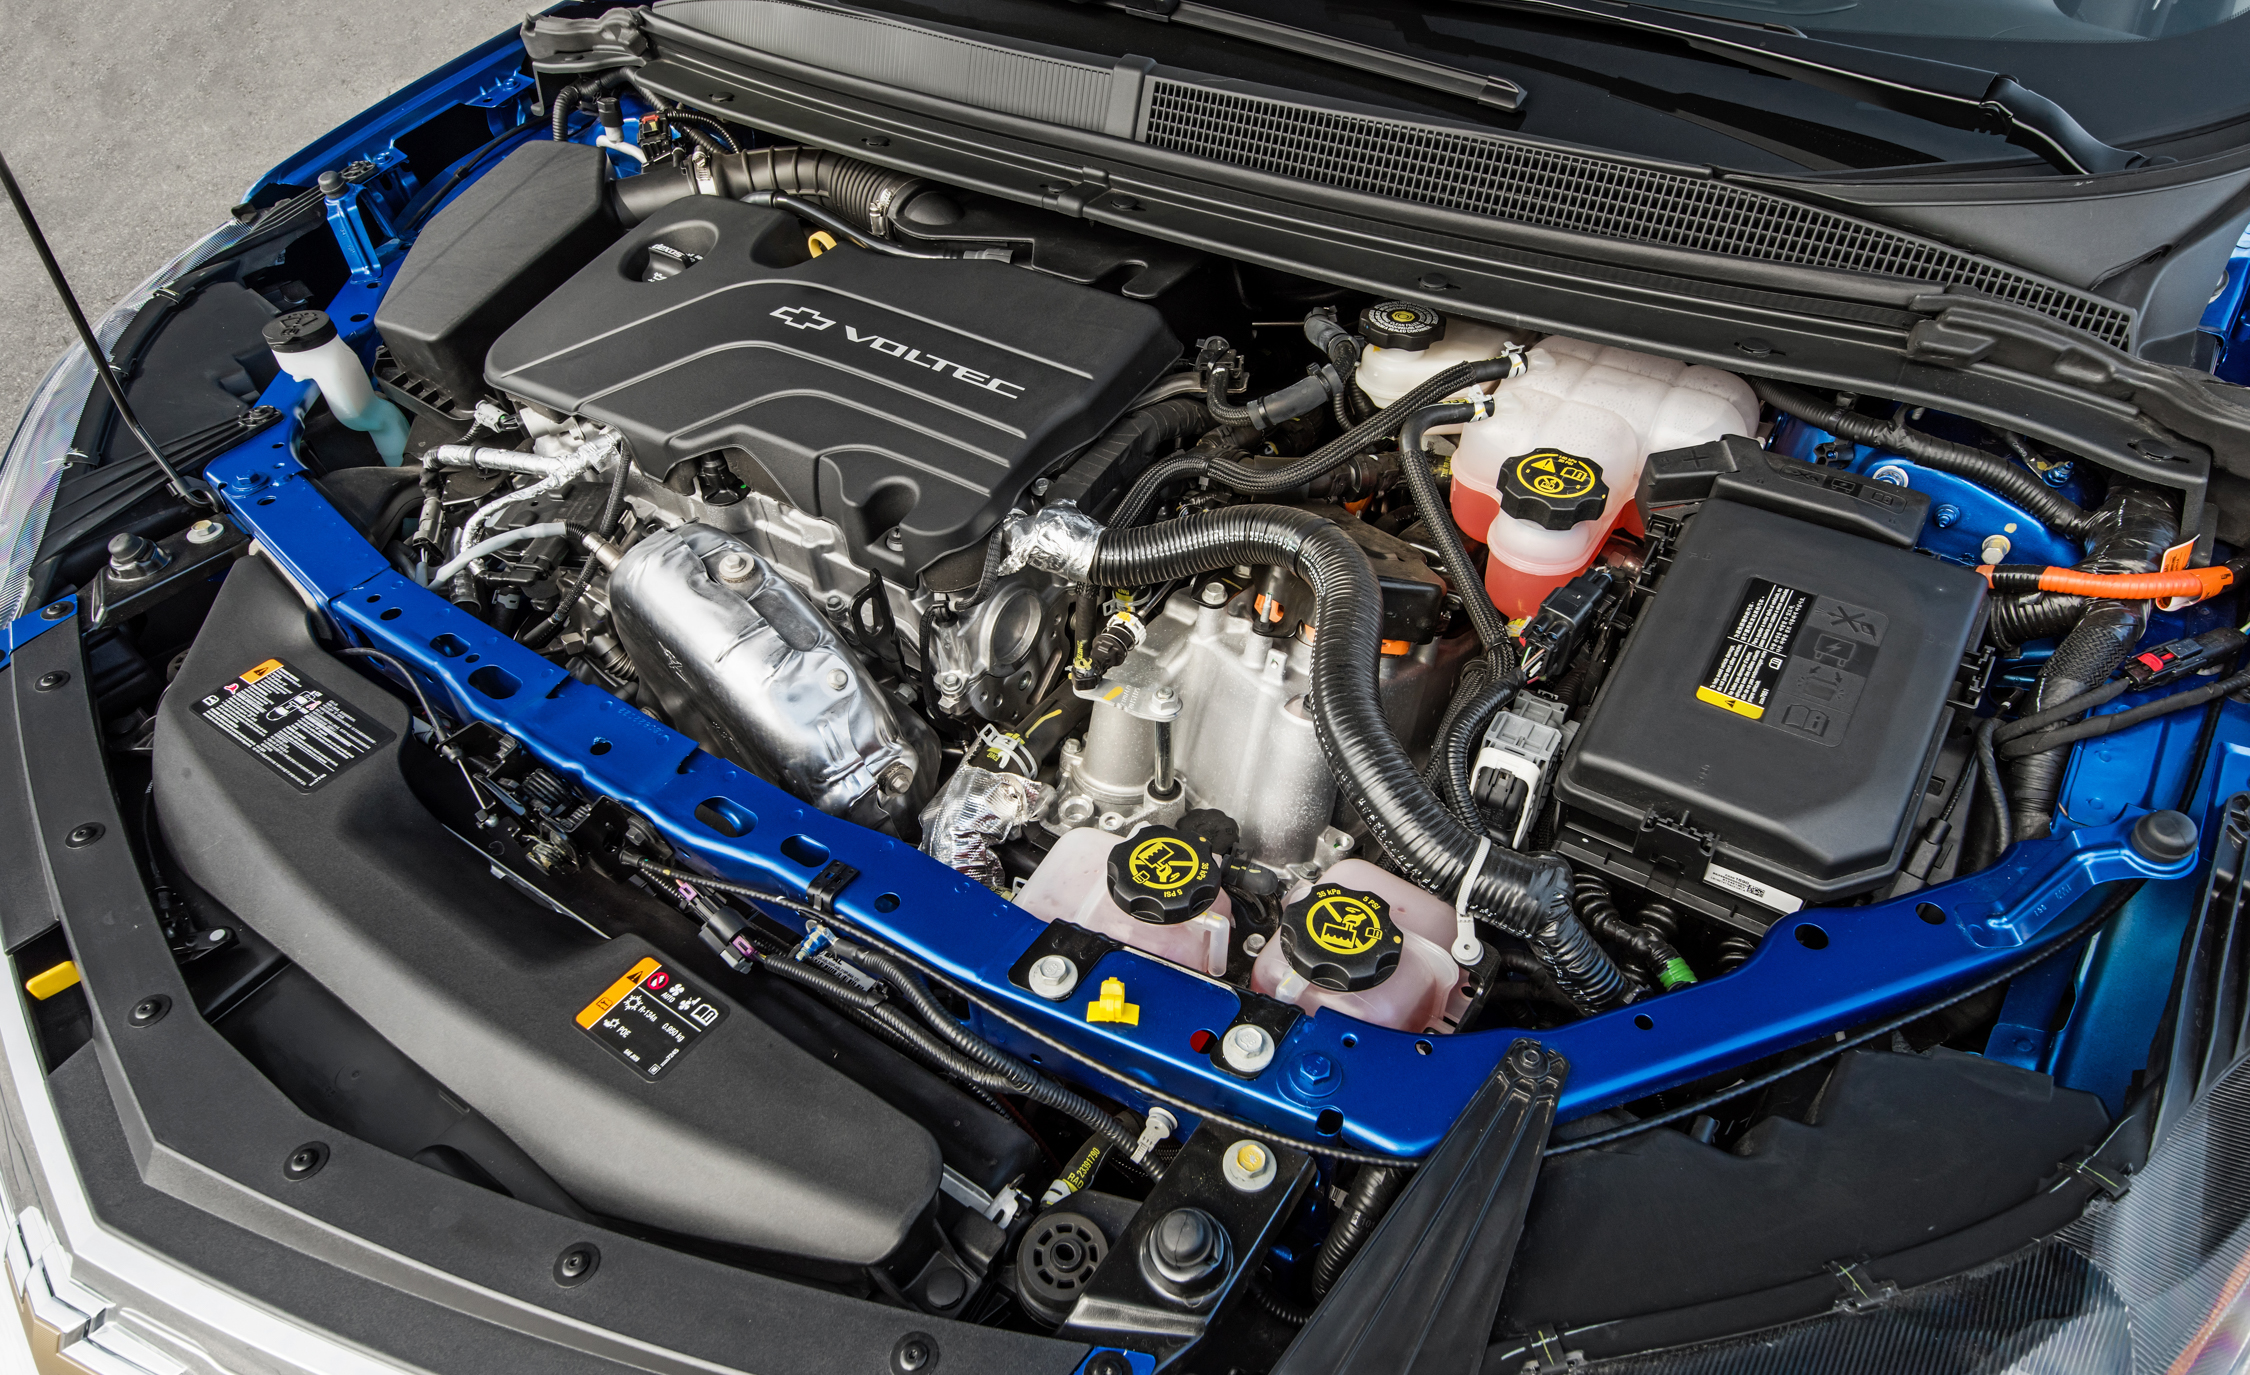 2017 Chevrolet Volt View Engine (Photo 16 of 16)